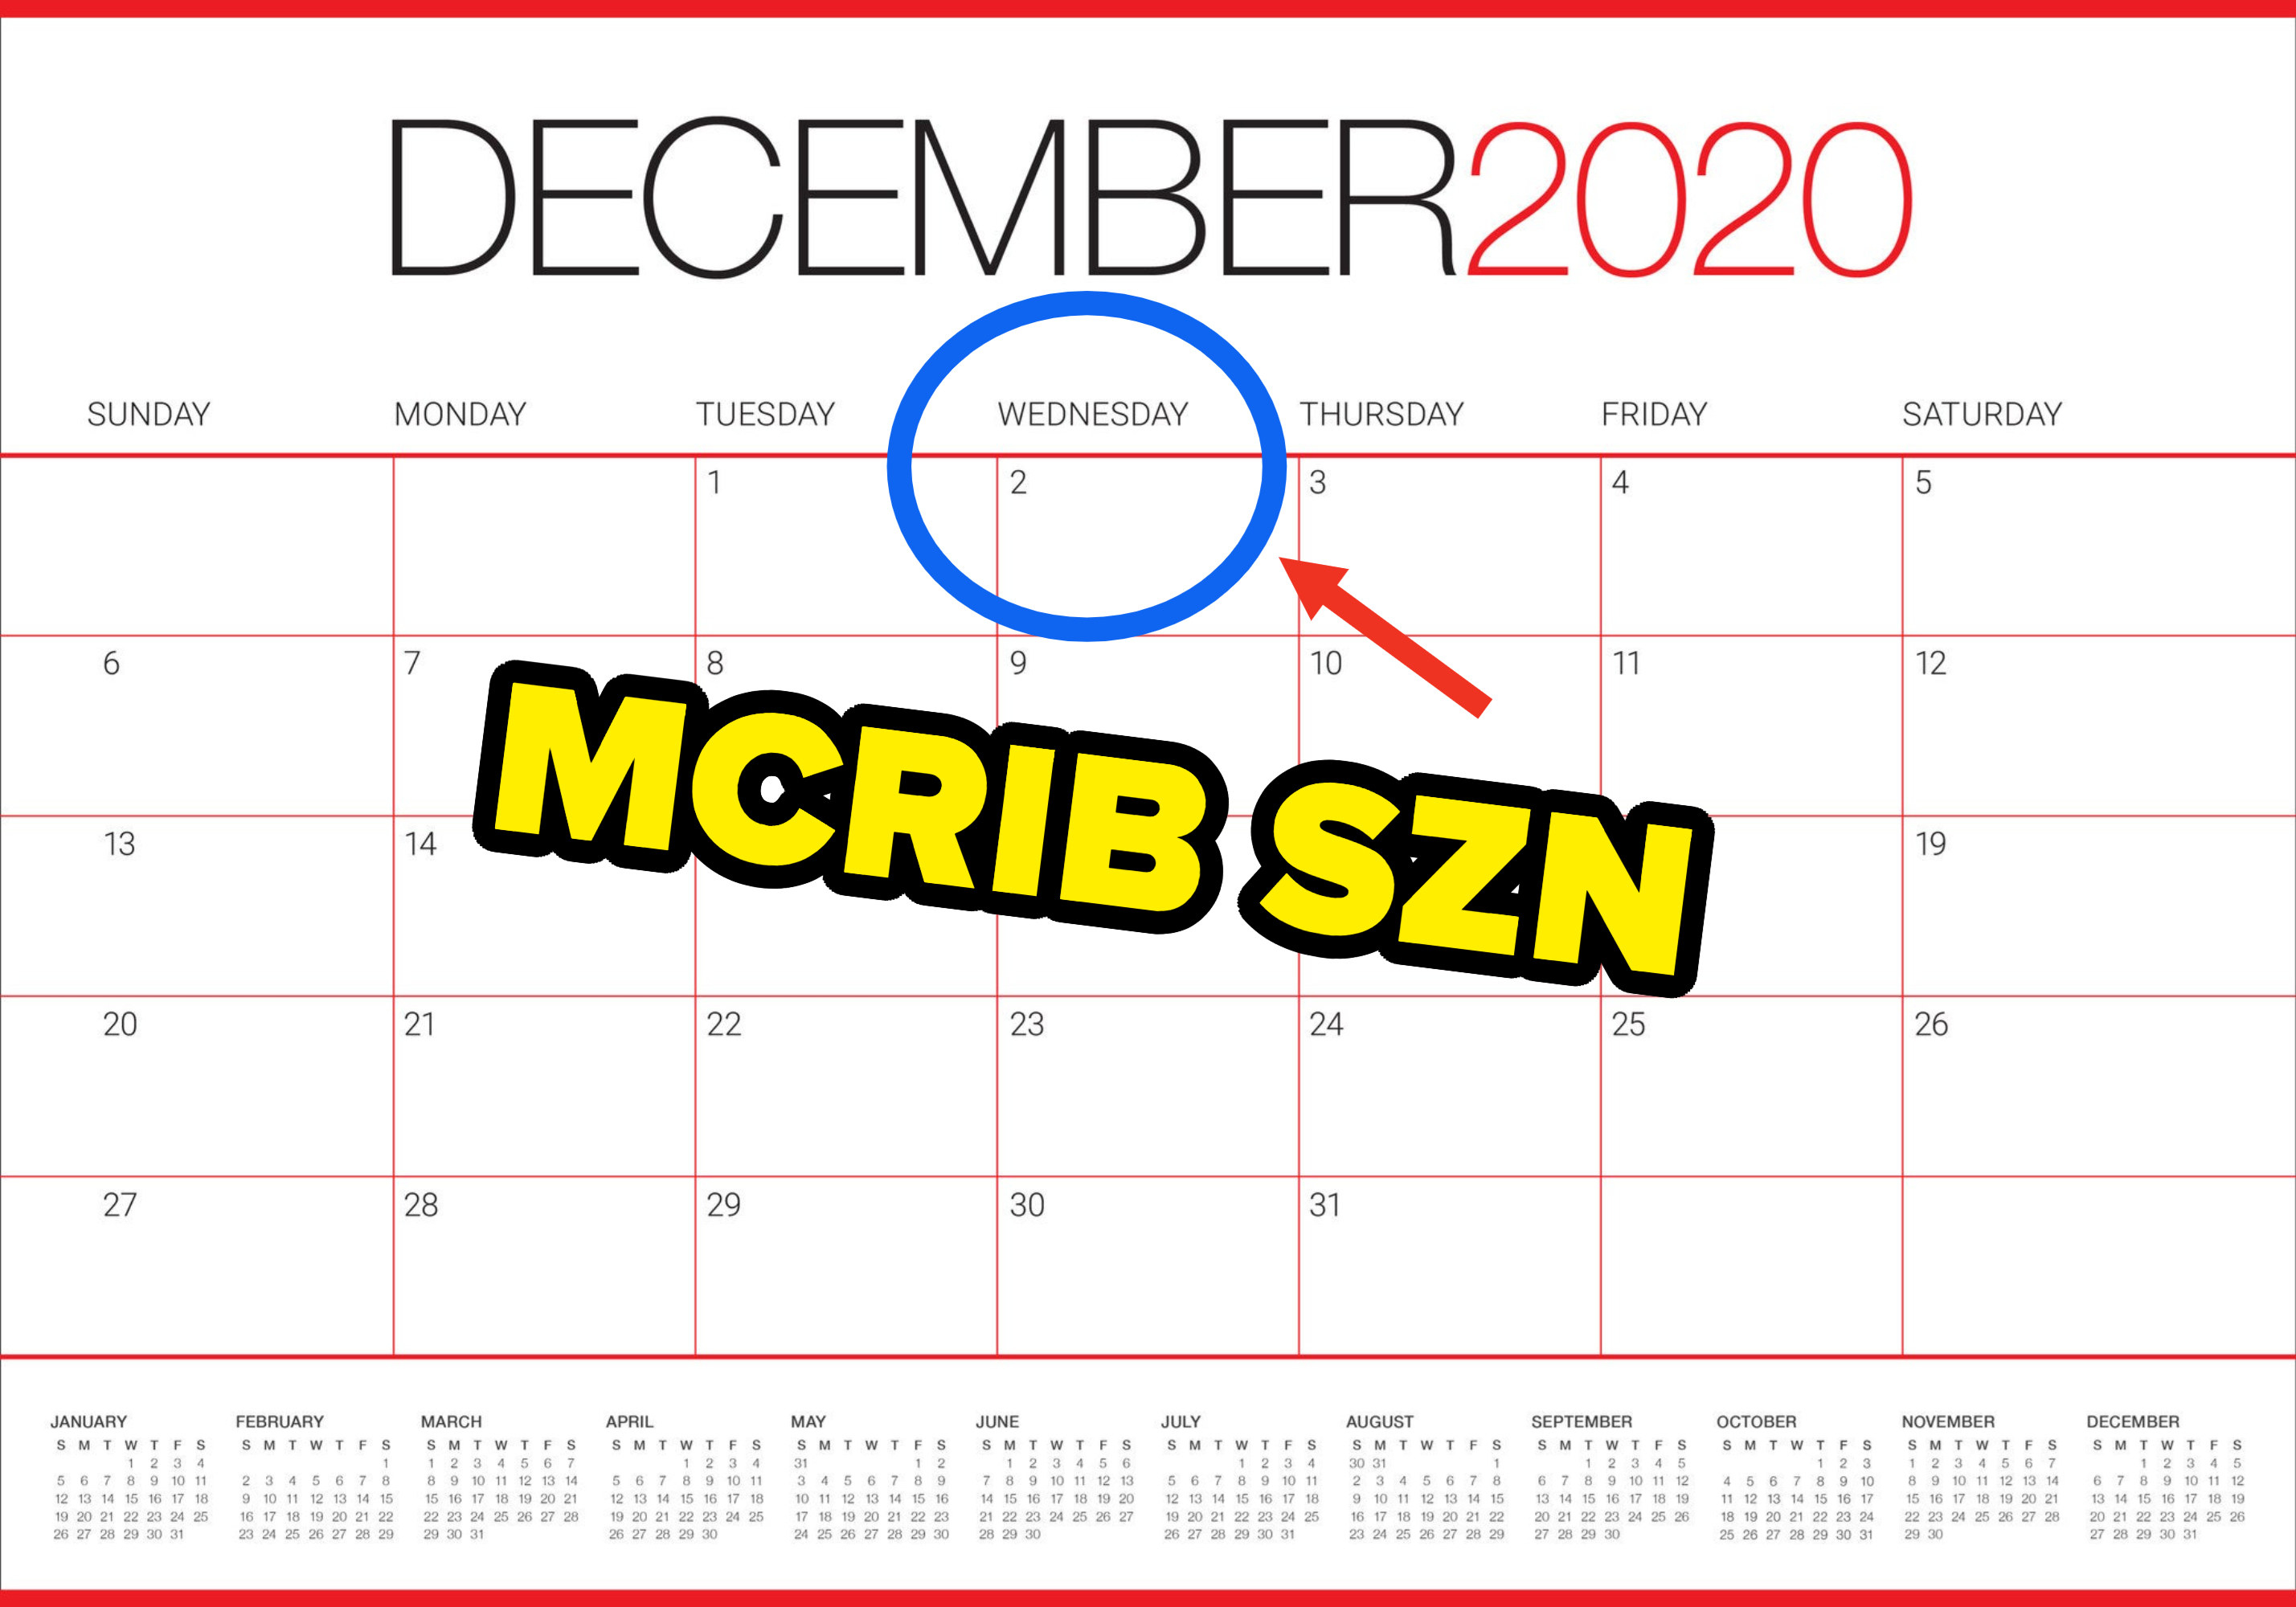 Calendar pointing out that Dec. 2 is the start of McRib season